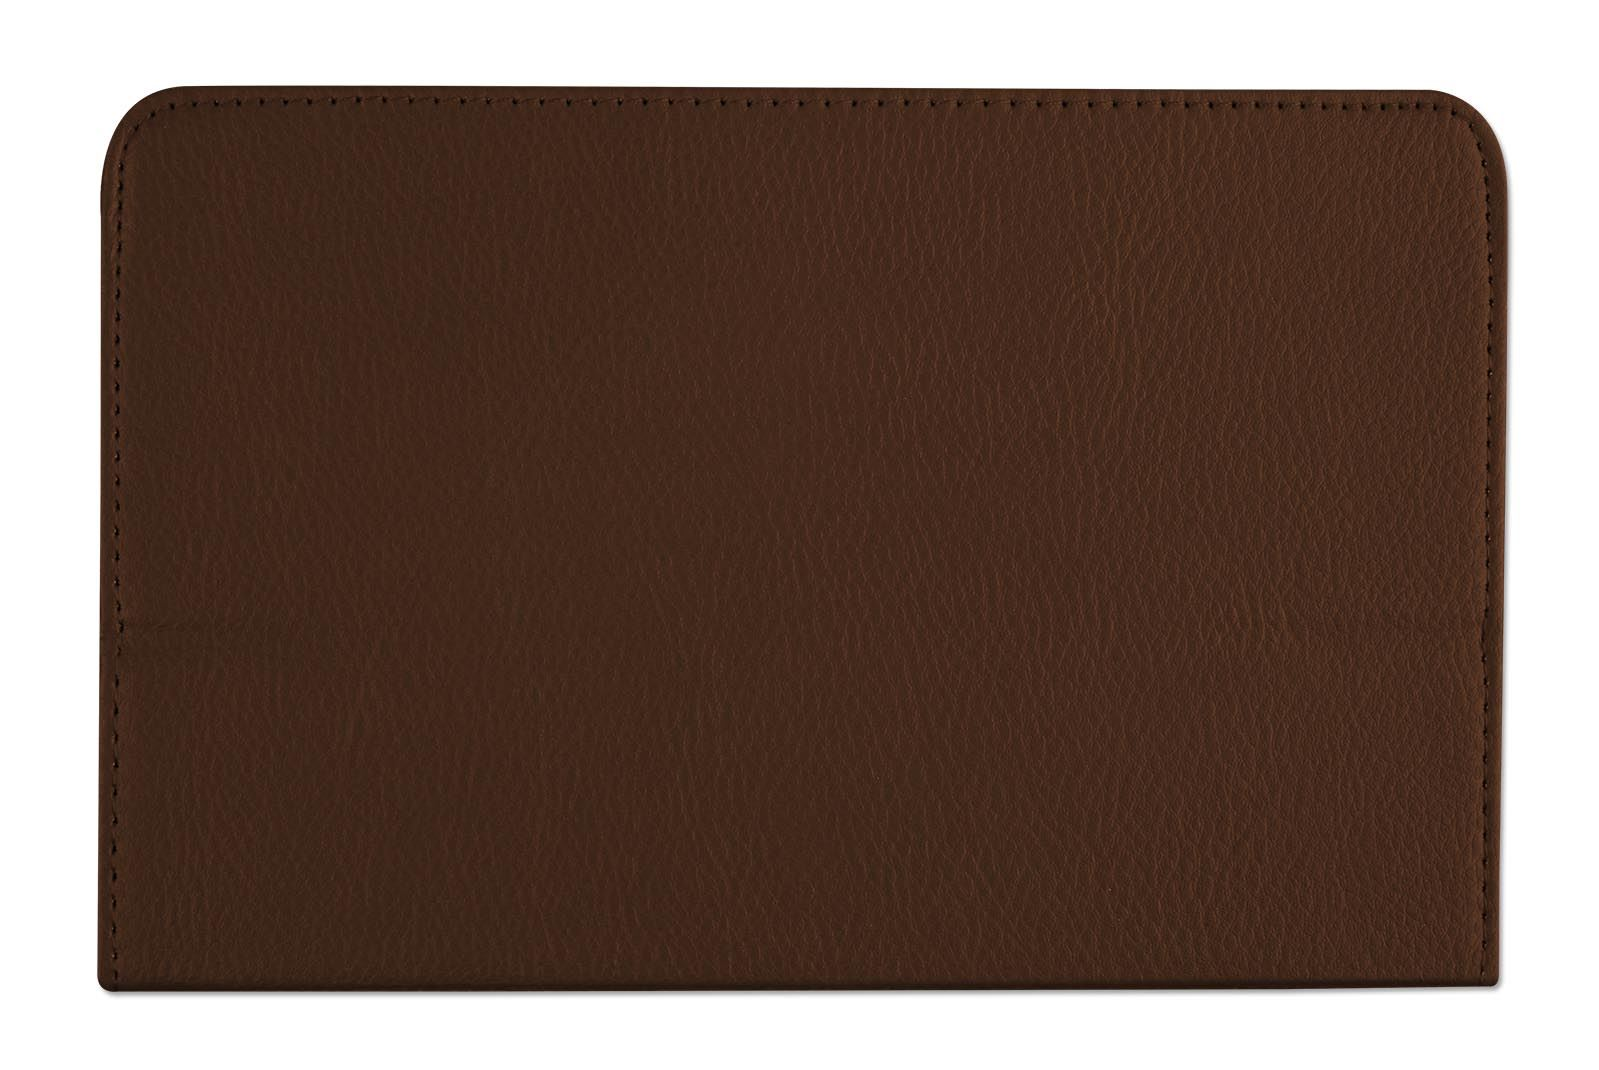 Hellfire-Trading-Magnetic-PU-Leather-Case-Cover-for-Lenovo-IdeaTab-A8-50-A5500 Indexbild 38